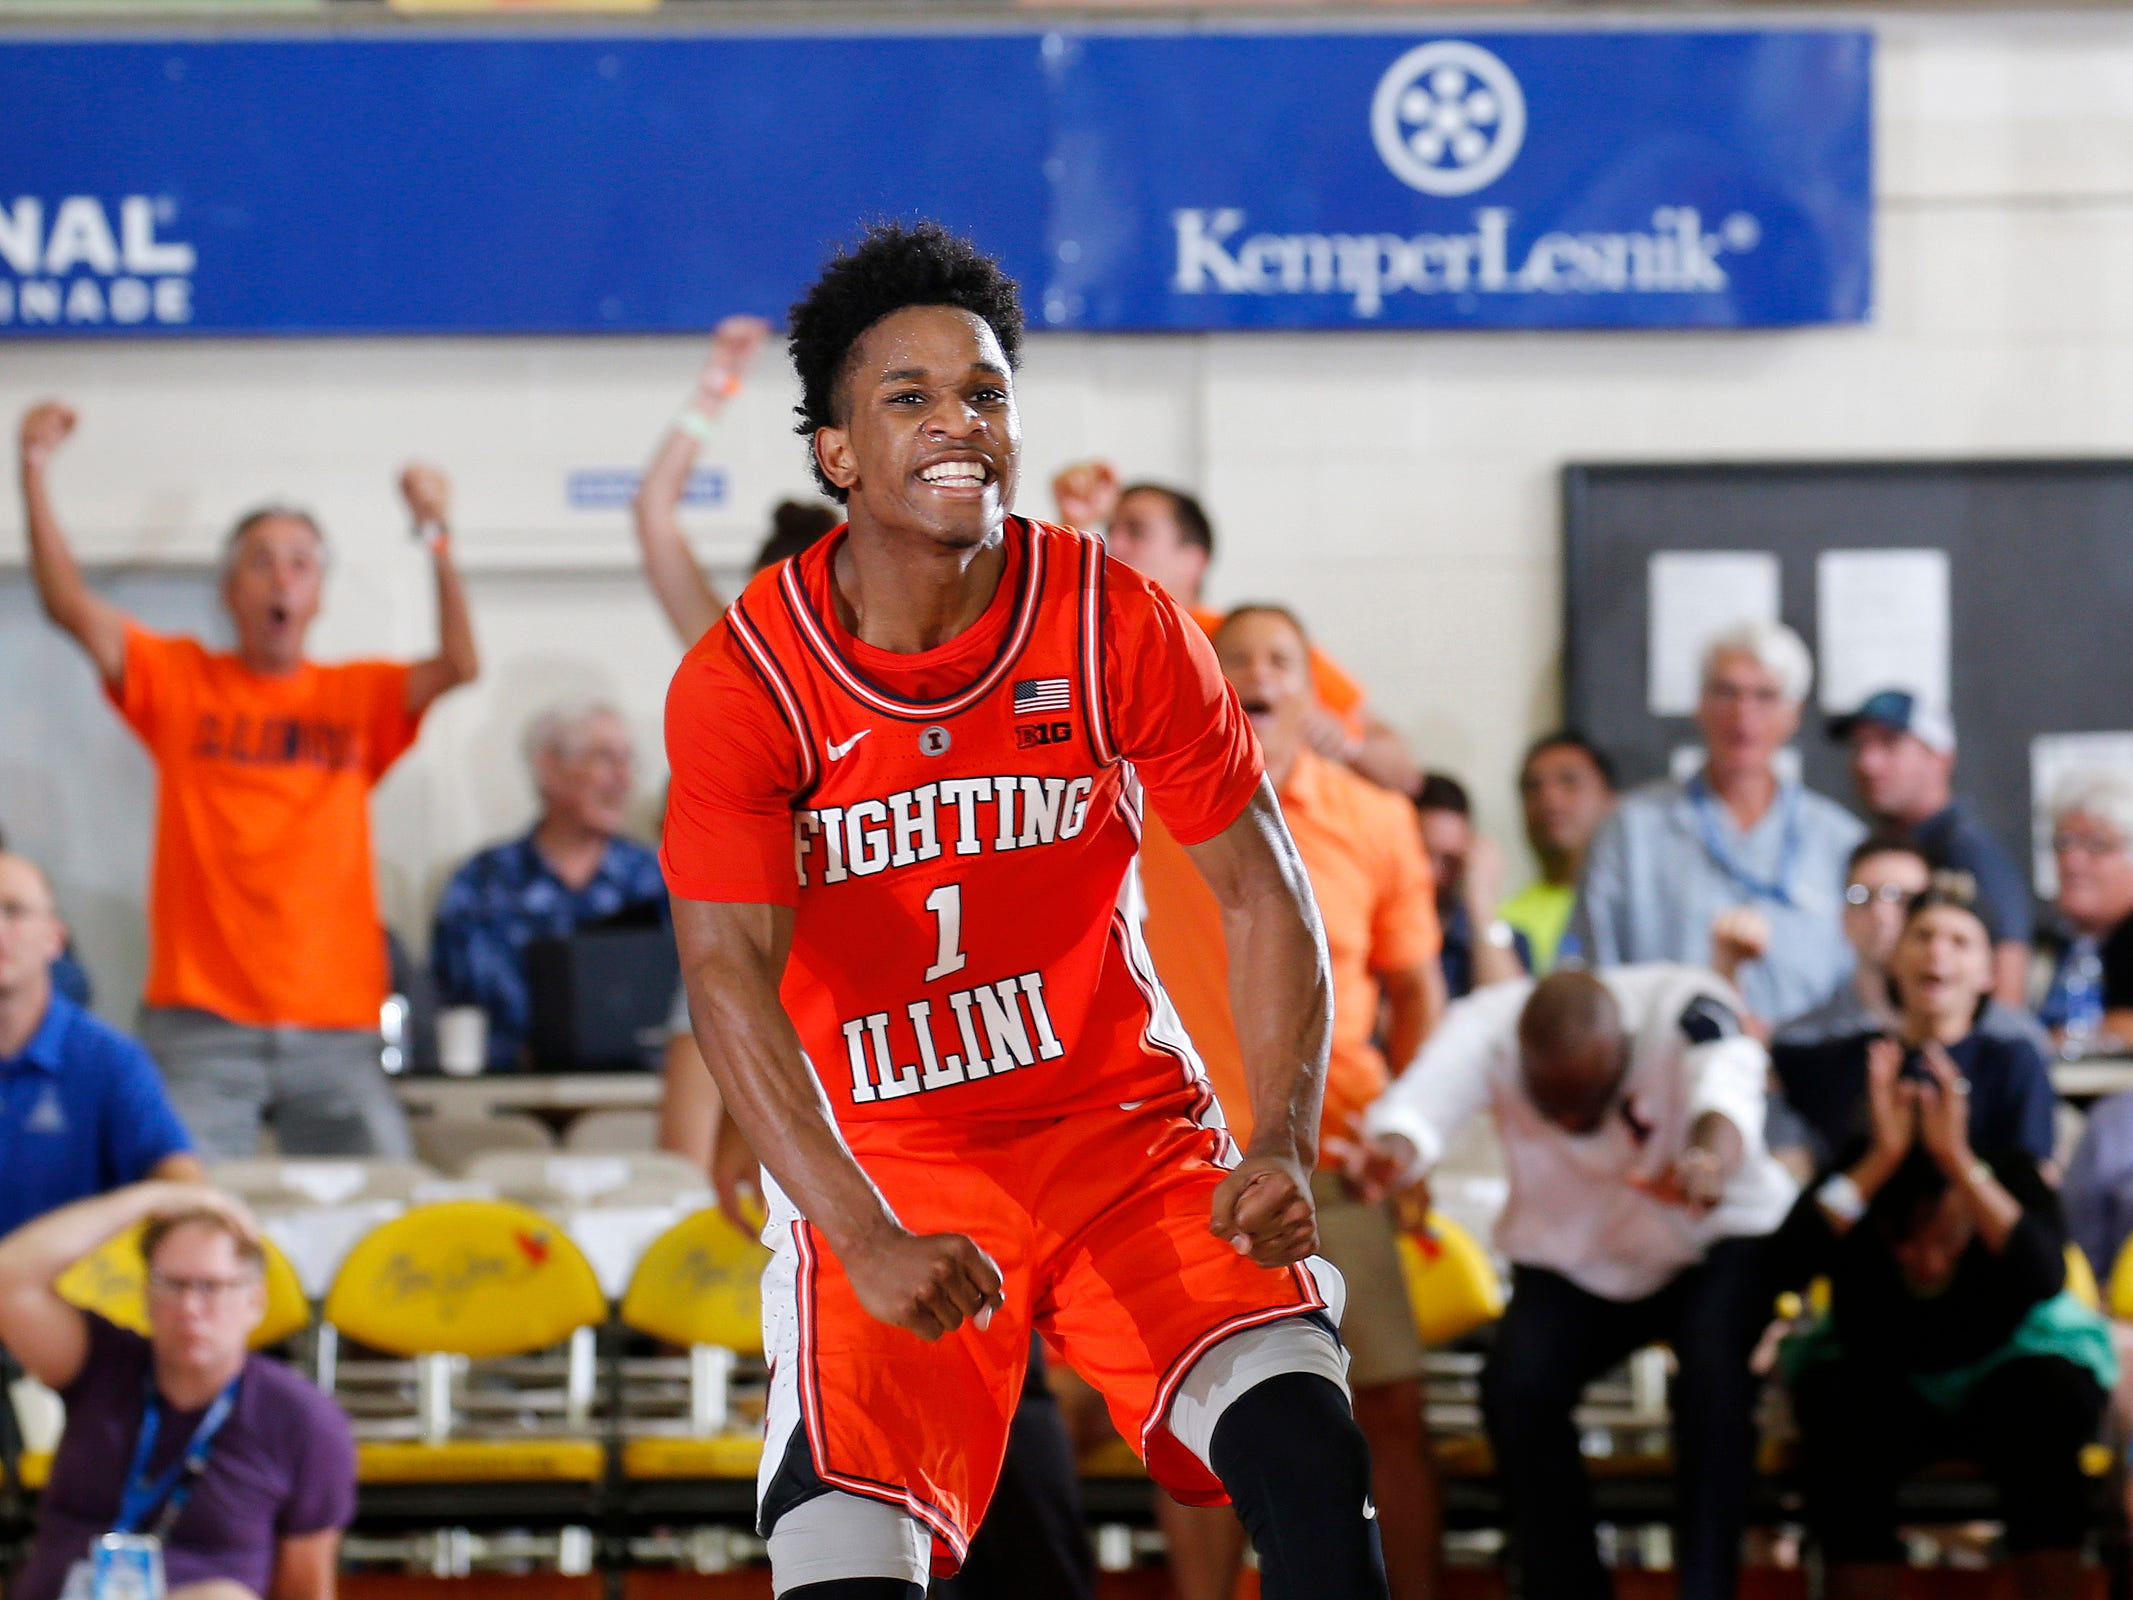 No. 14: Illinois Fighting Illini (3-7, 0-2 Big Ten). Sophomore guard Trent Frazier is averaging a team-best 14.3 points and 3.2 assists with 40 percent 3-point shooting (22-for-55).